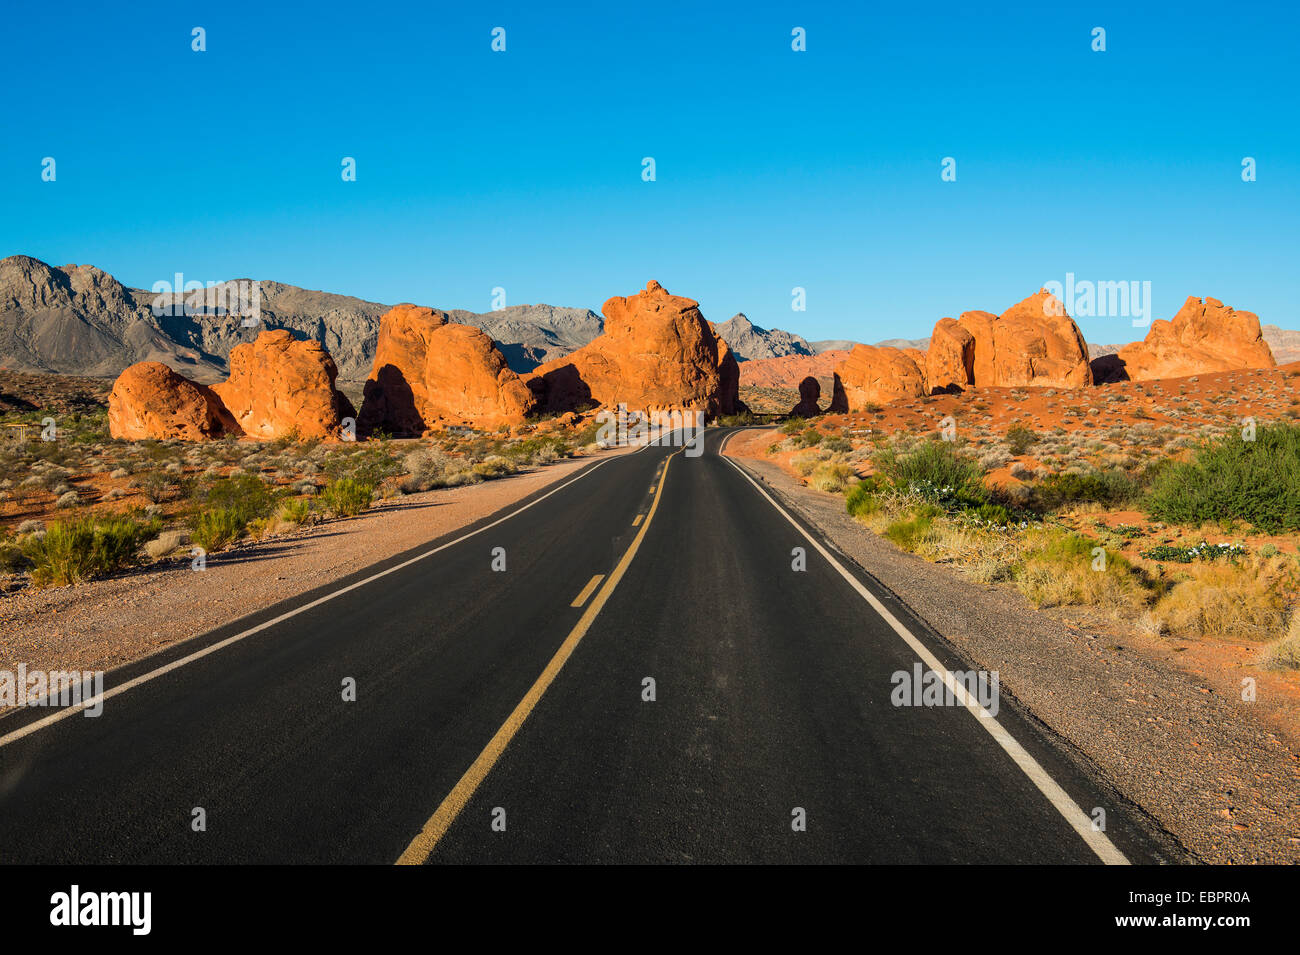 Road leading in the redrock sandstone formations of the Valley of Fire State Park, Nevada, United States of America - Stock Image